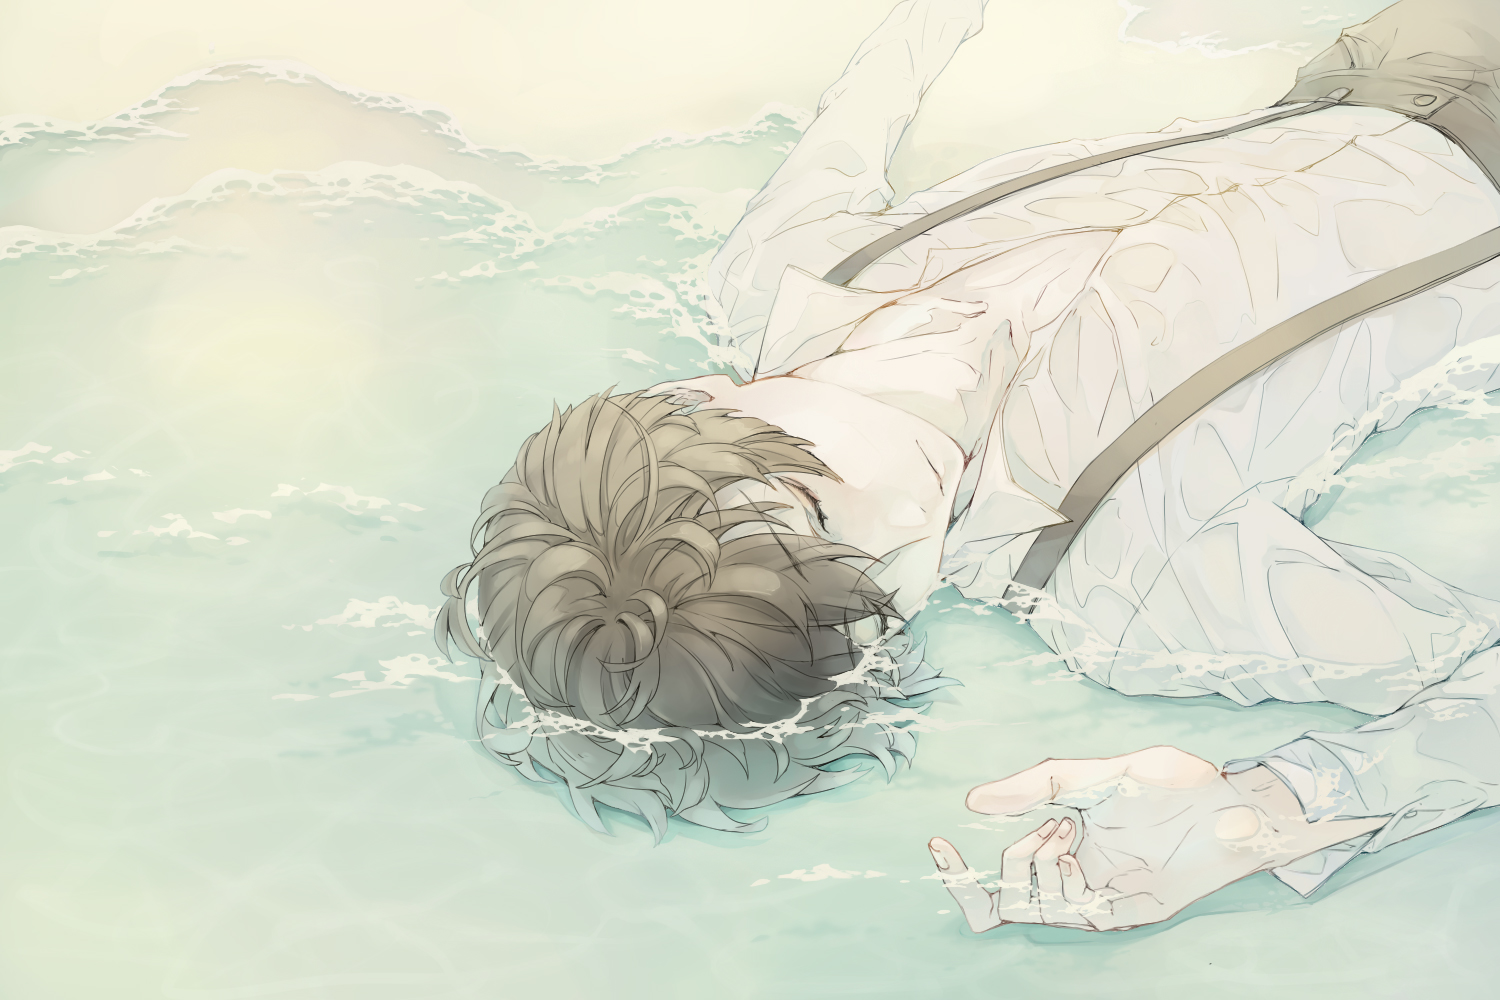 91 Days ending Angelo Lagusa in wet clothes lying in the shallow water with closed eyes melancholic fanart what really happened Avilio Bruno 91 Days yaoi sleeping dreaming sad - Dreams about You 91-days-yaoi Yaoi desktop wallpapers Uke Sleeping Angelo Lagusa - fanarts on yaoi-online.com